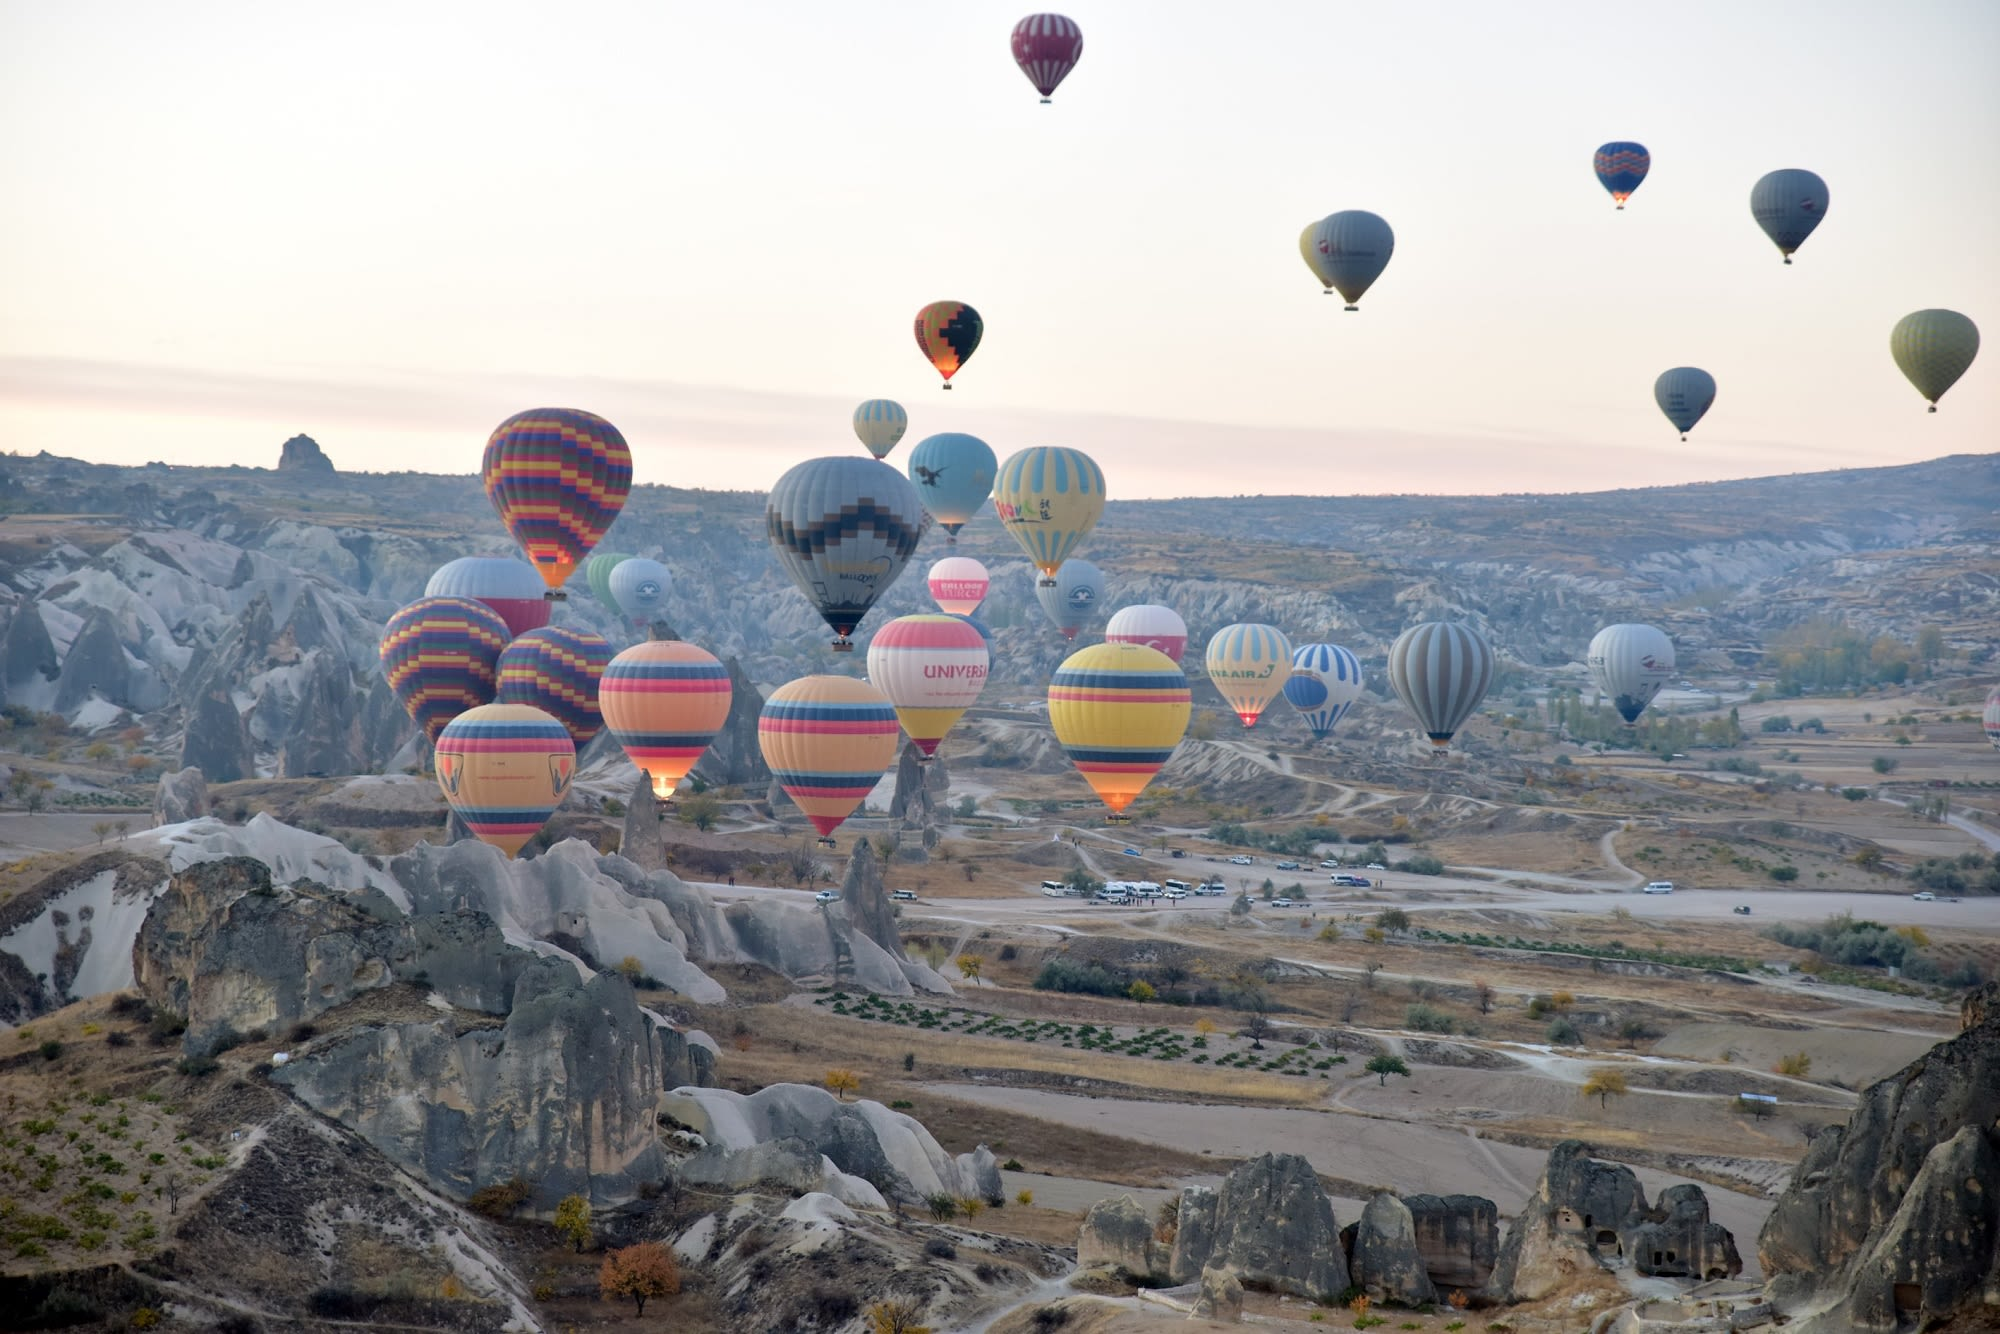 Top 10 Travel Destinations and Their Must-Dos